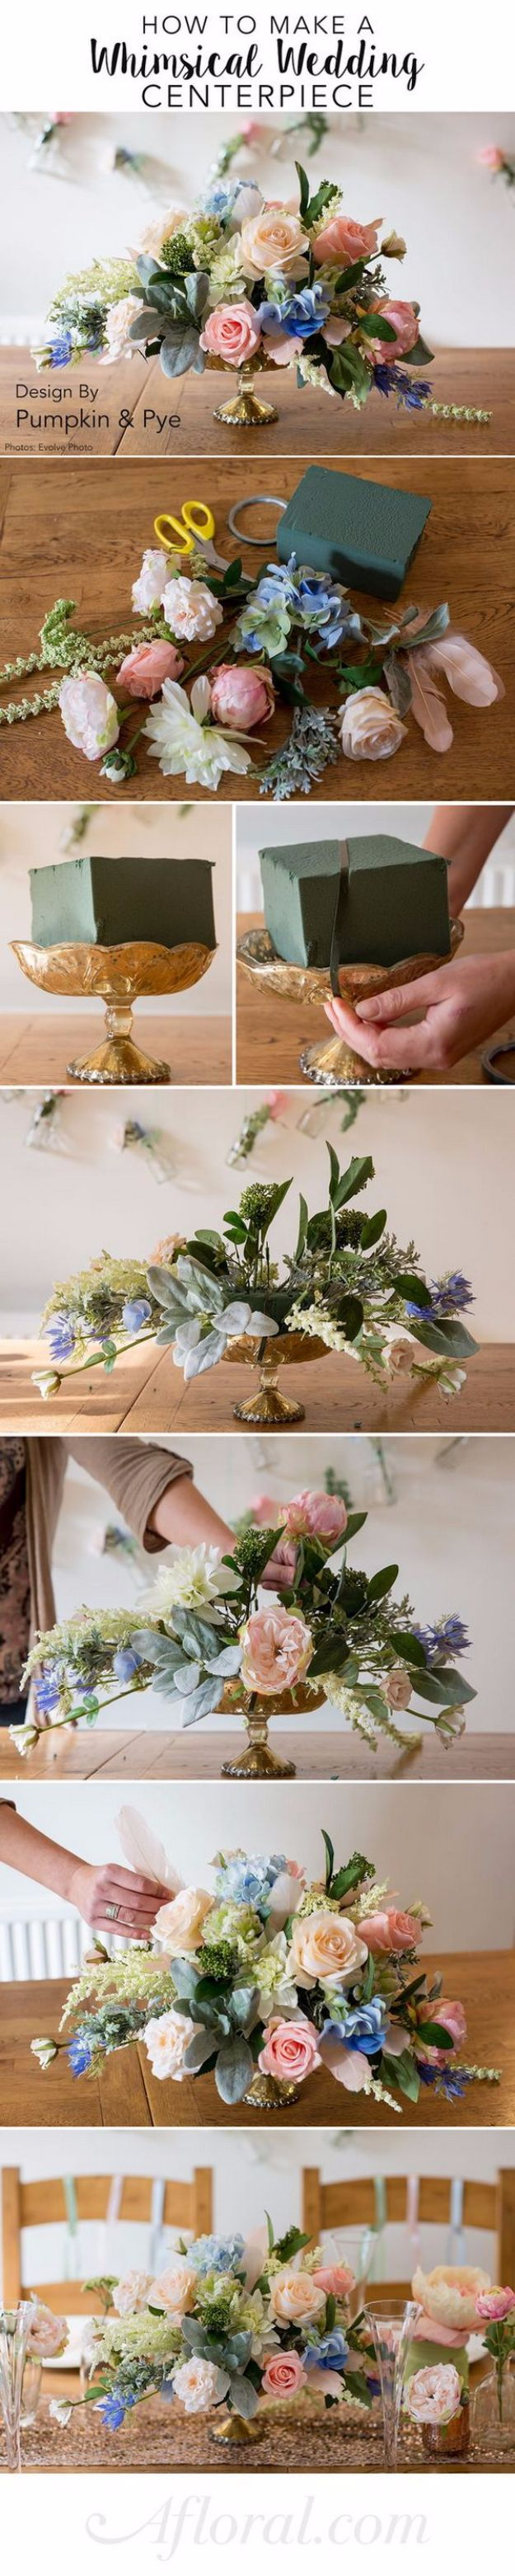 33 best diy wedding centerpieces you can make on a budget diy wedding centerpieces diy whimsical wedding centerpiece do it yourself ideas for brides and junglespirit Images